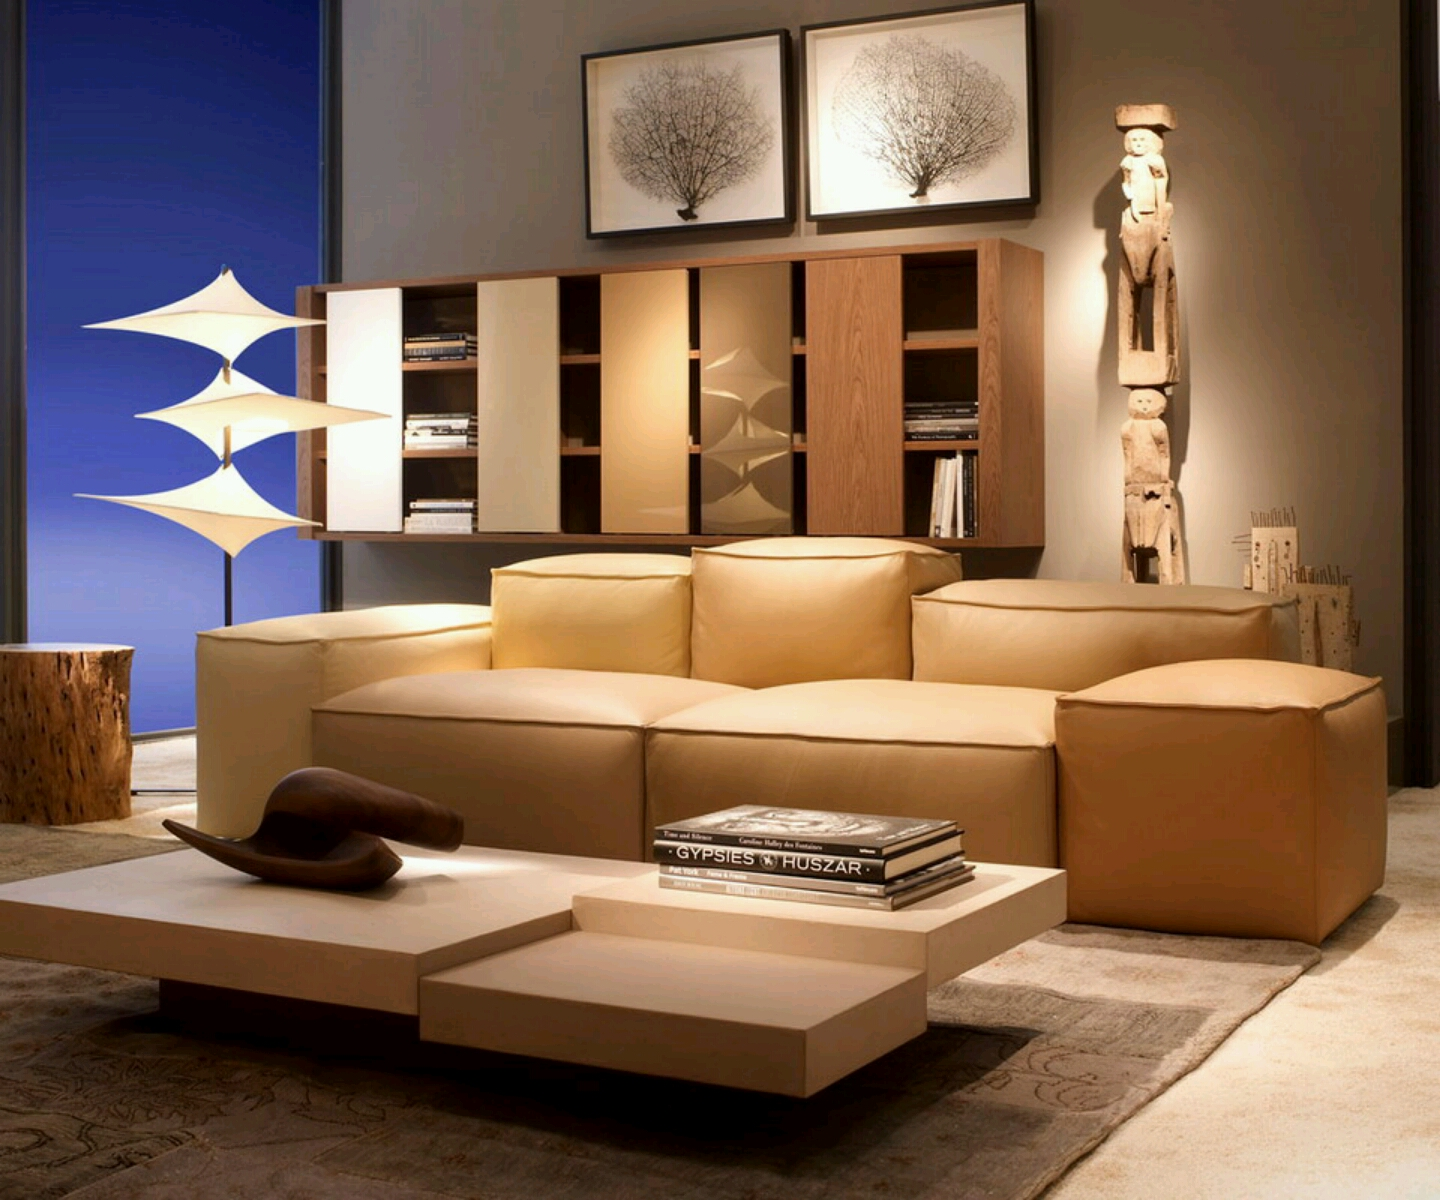 Beautiful modern sofa furniture designs an interior design Sofa design ideas photos